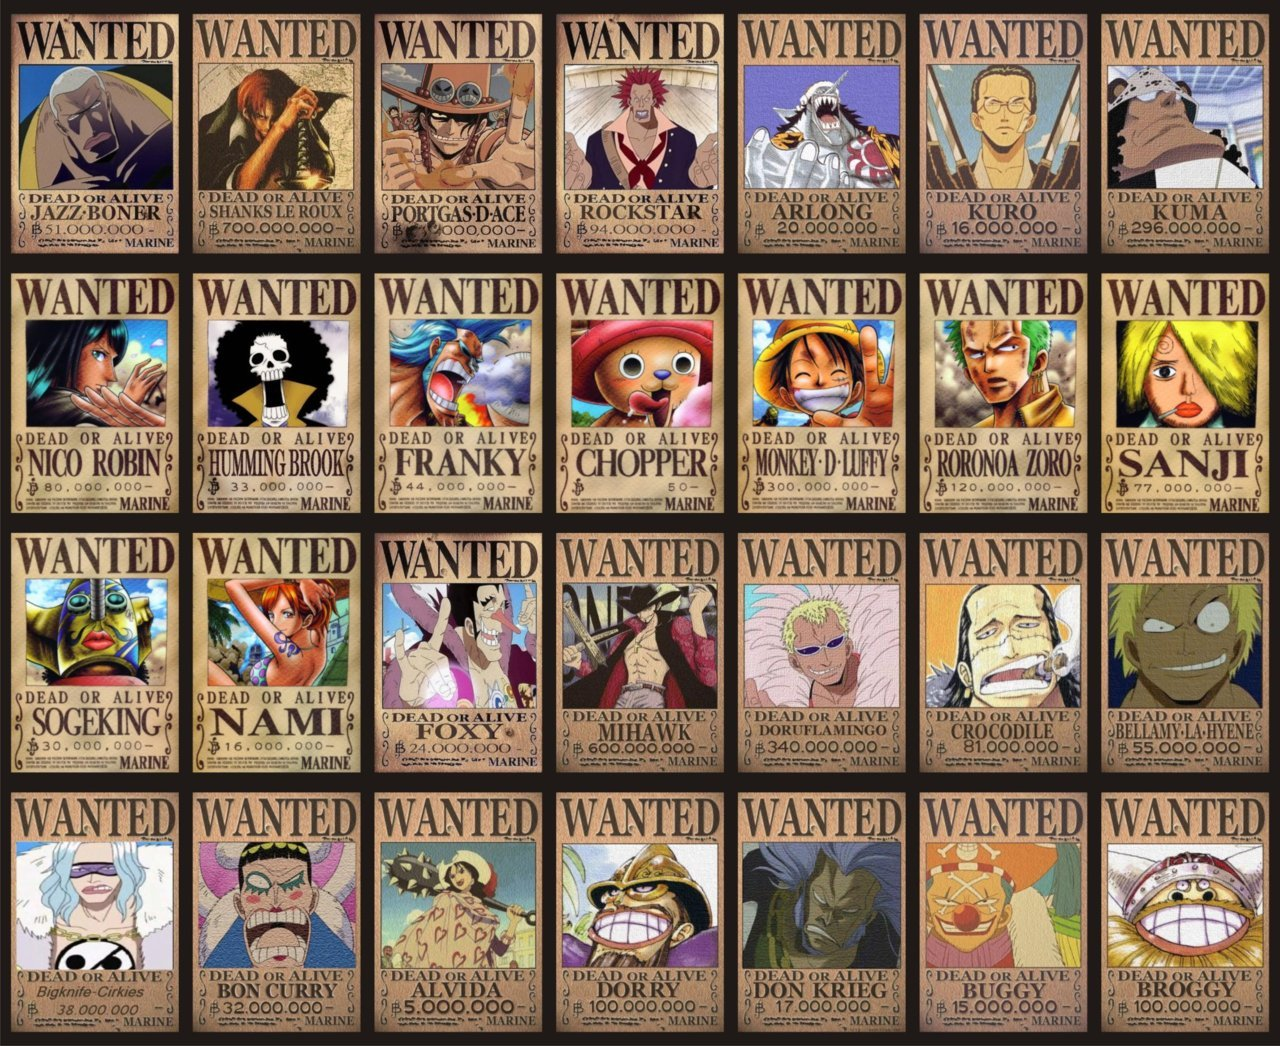 REY VERGEL on Tumblr. (ONE PIECE - WANTED! Dead or Alive! Jazz...)